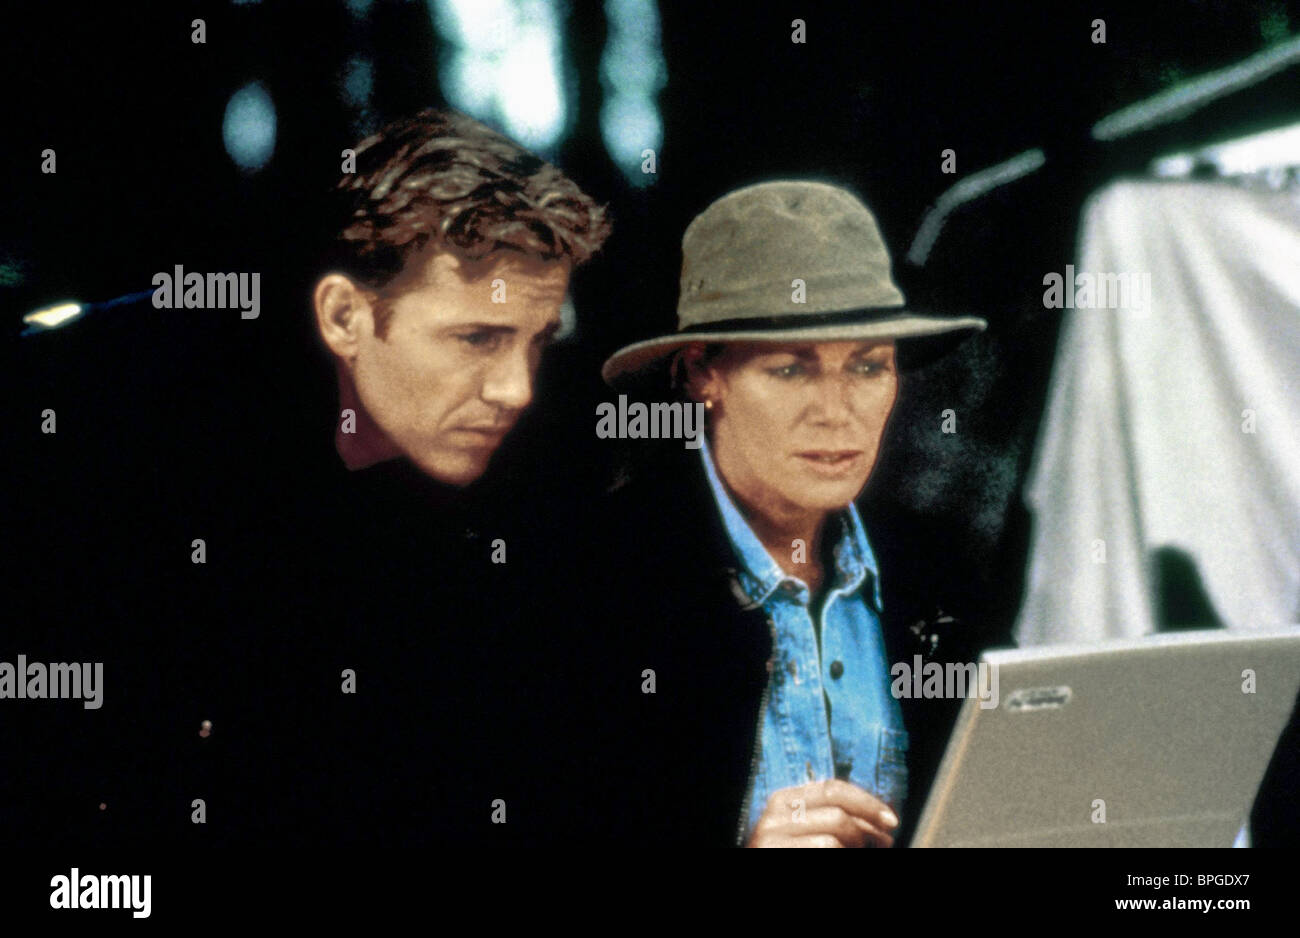 WOLF LARSON & KELLY MCGILLIS STORM CHASERS; REVENGE OF THE TWISTER (1998) - Stock Image